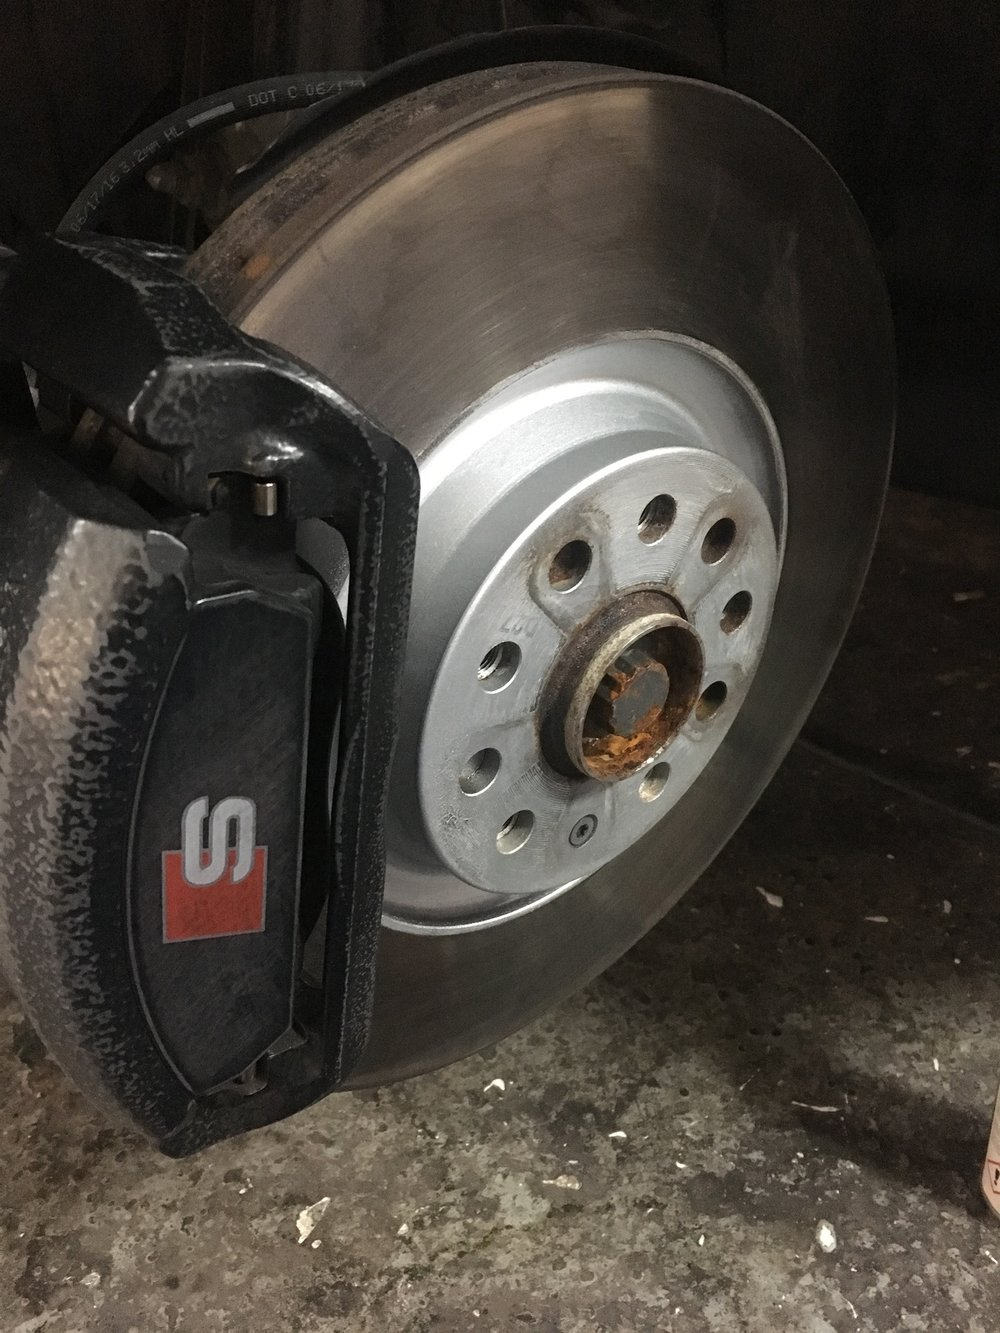 ORIGINAL AUDI CALIPERS BEFORE REFURBISHMENT